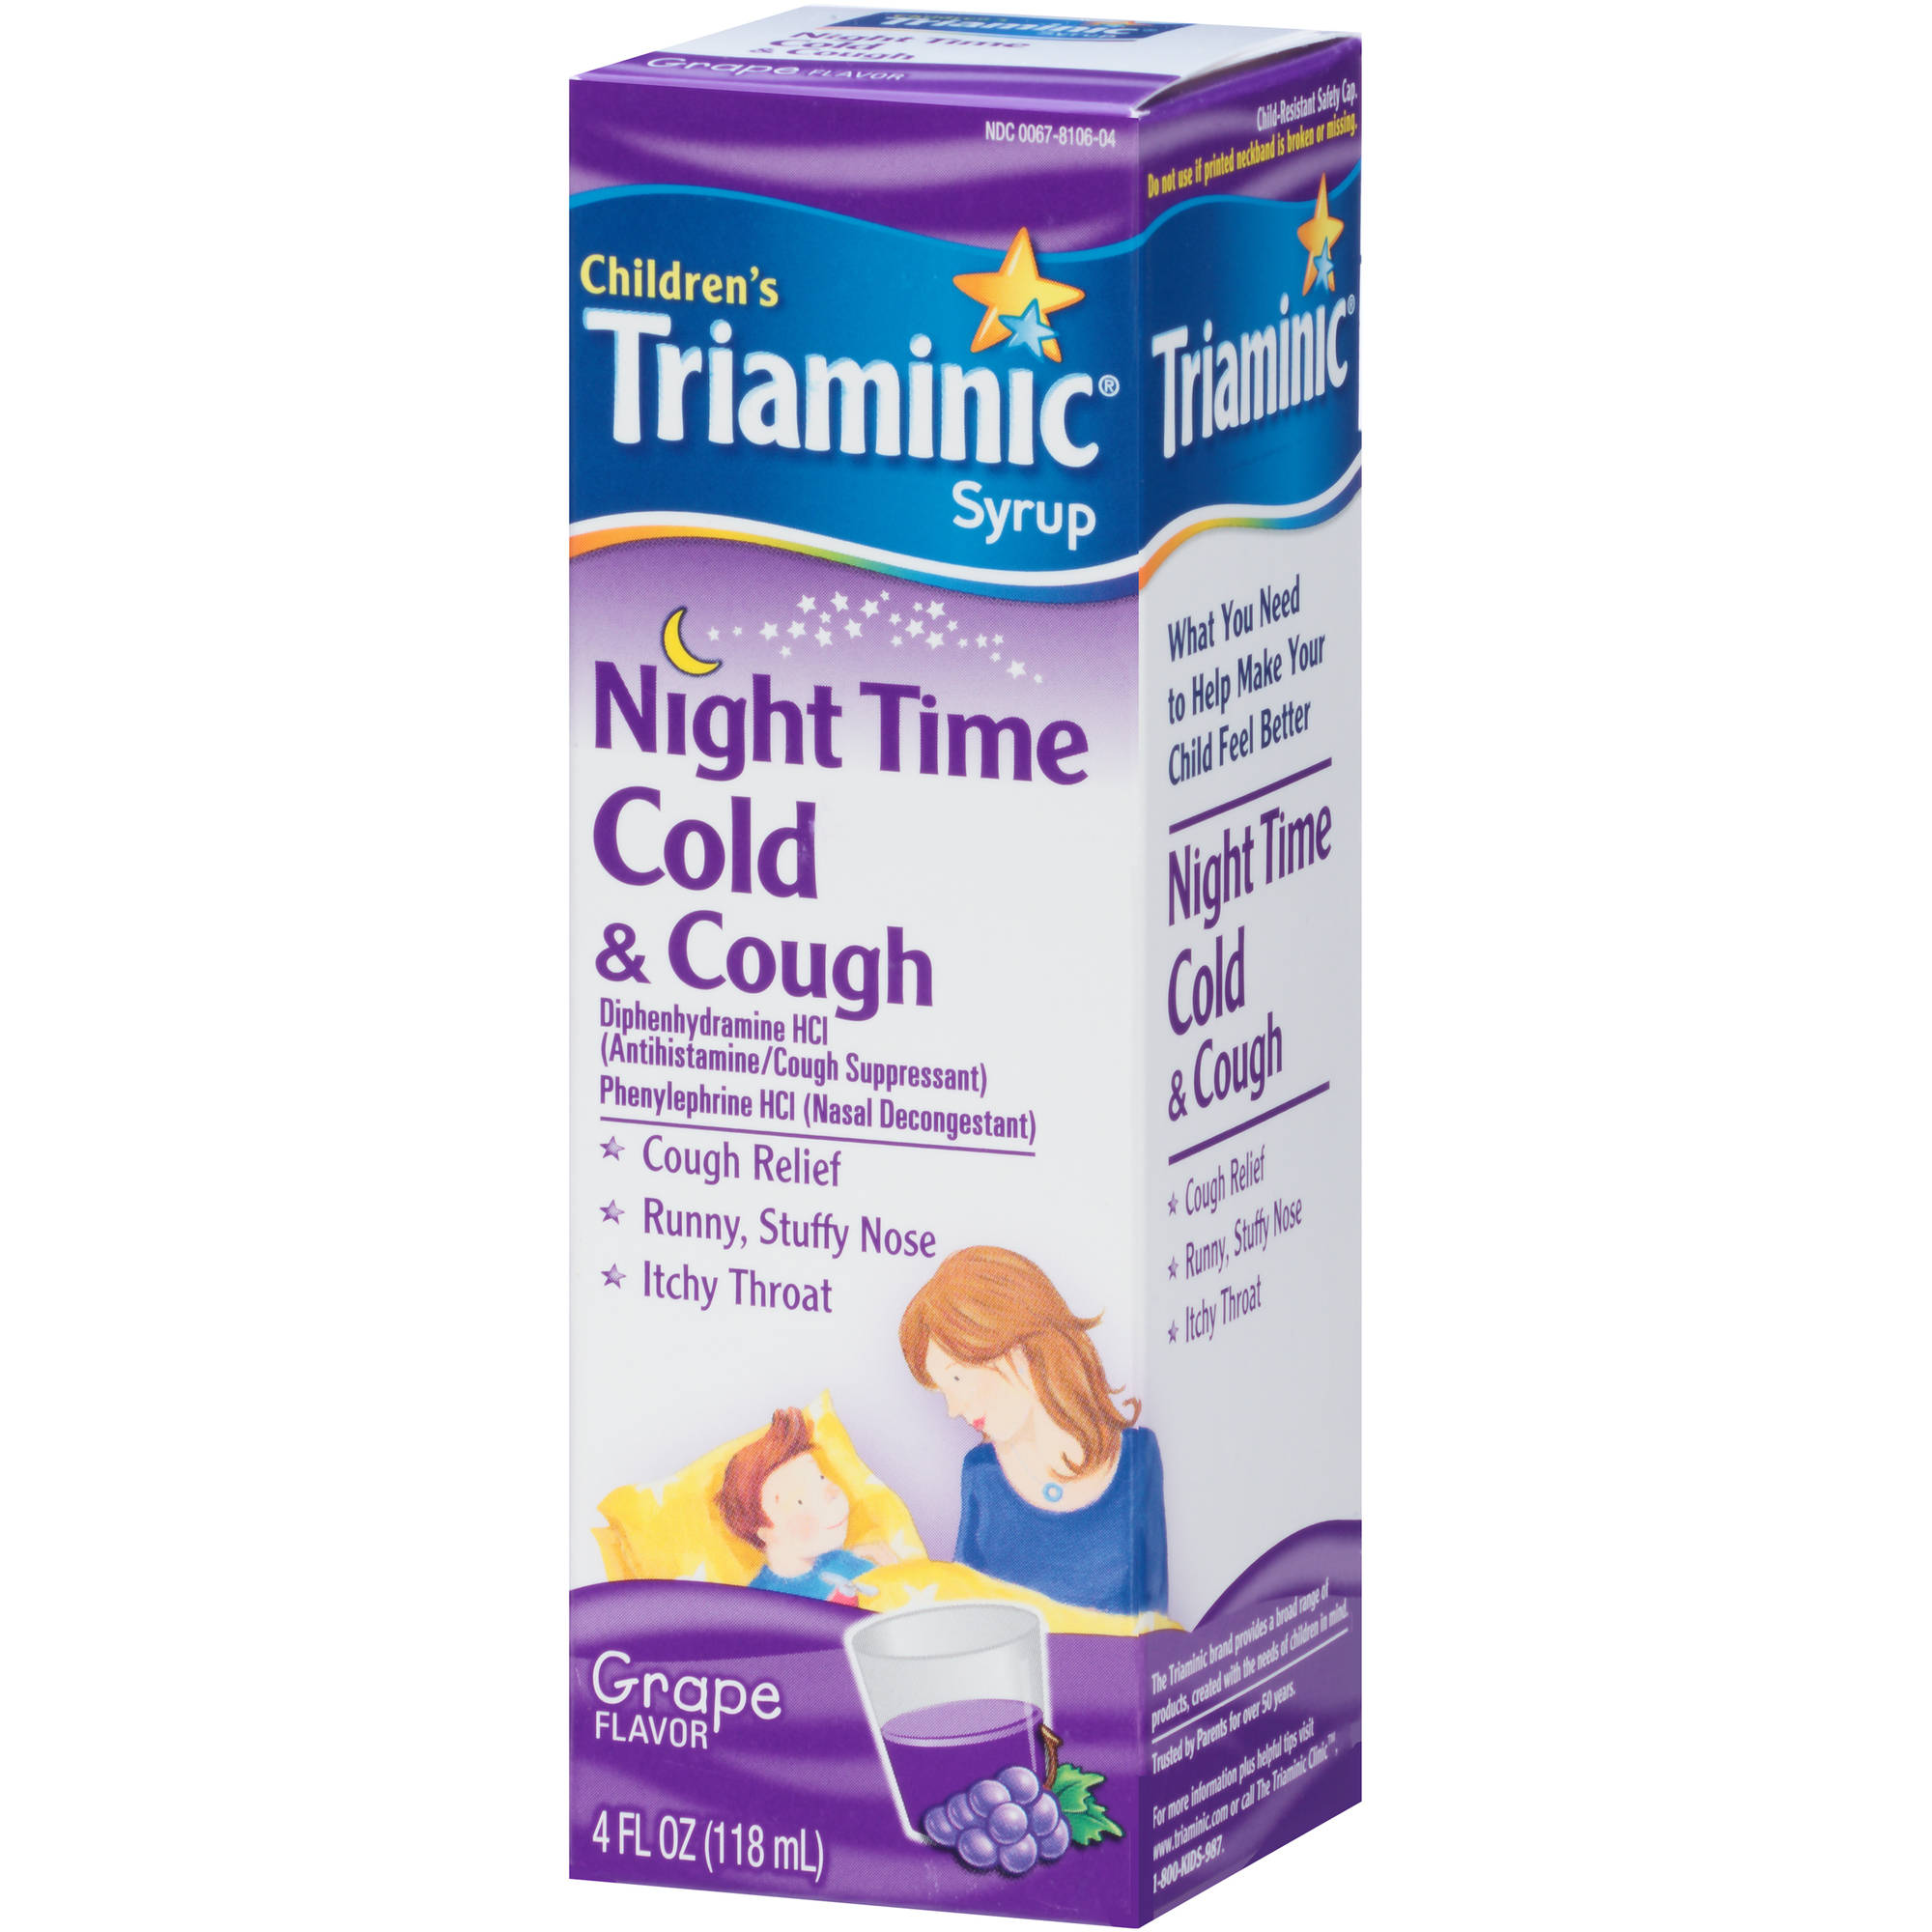 FREE Triaminic Cold Medicine at Dollar Tree with Coupon